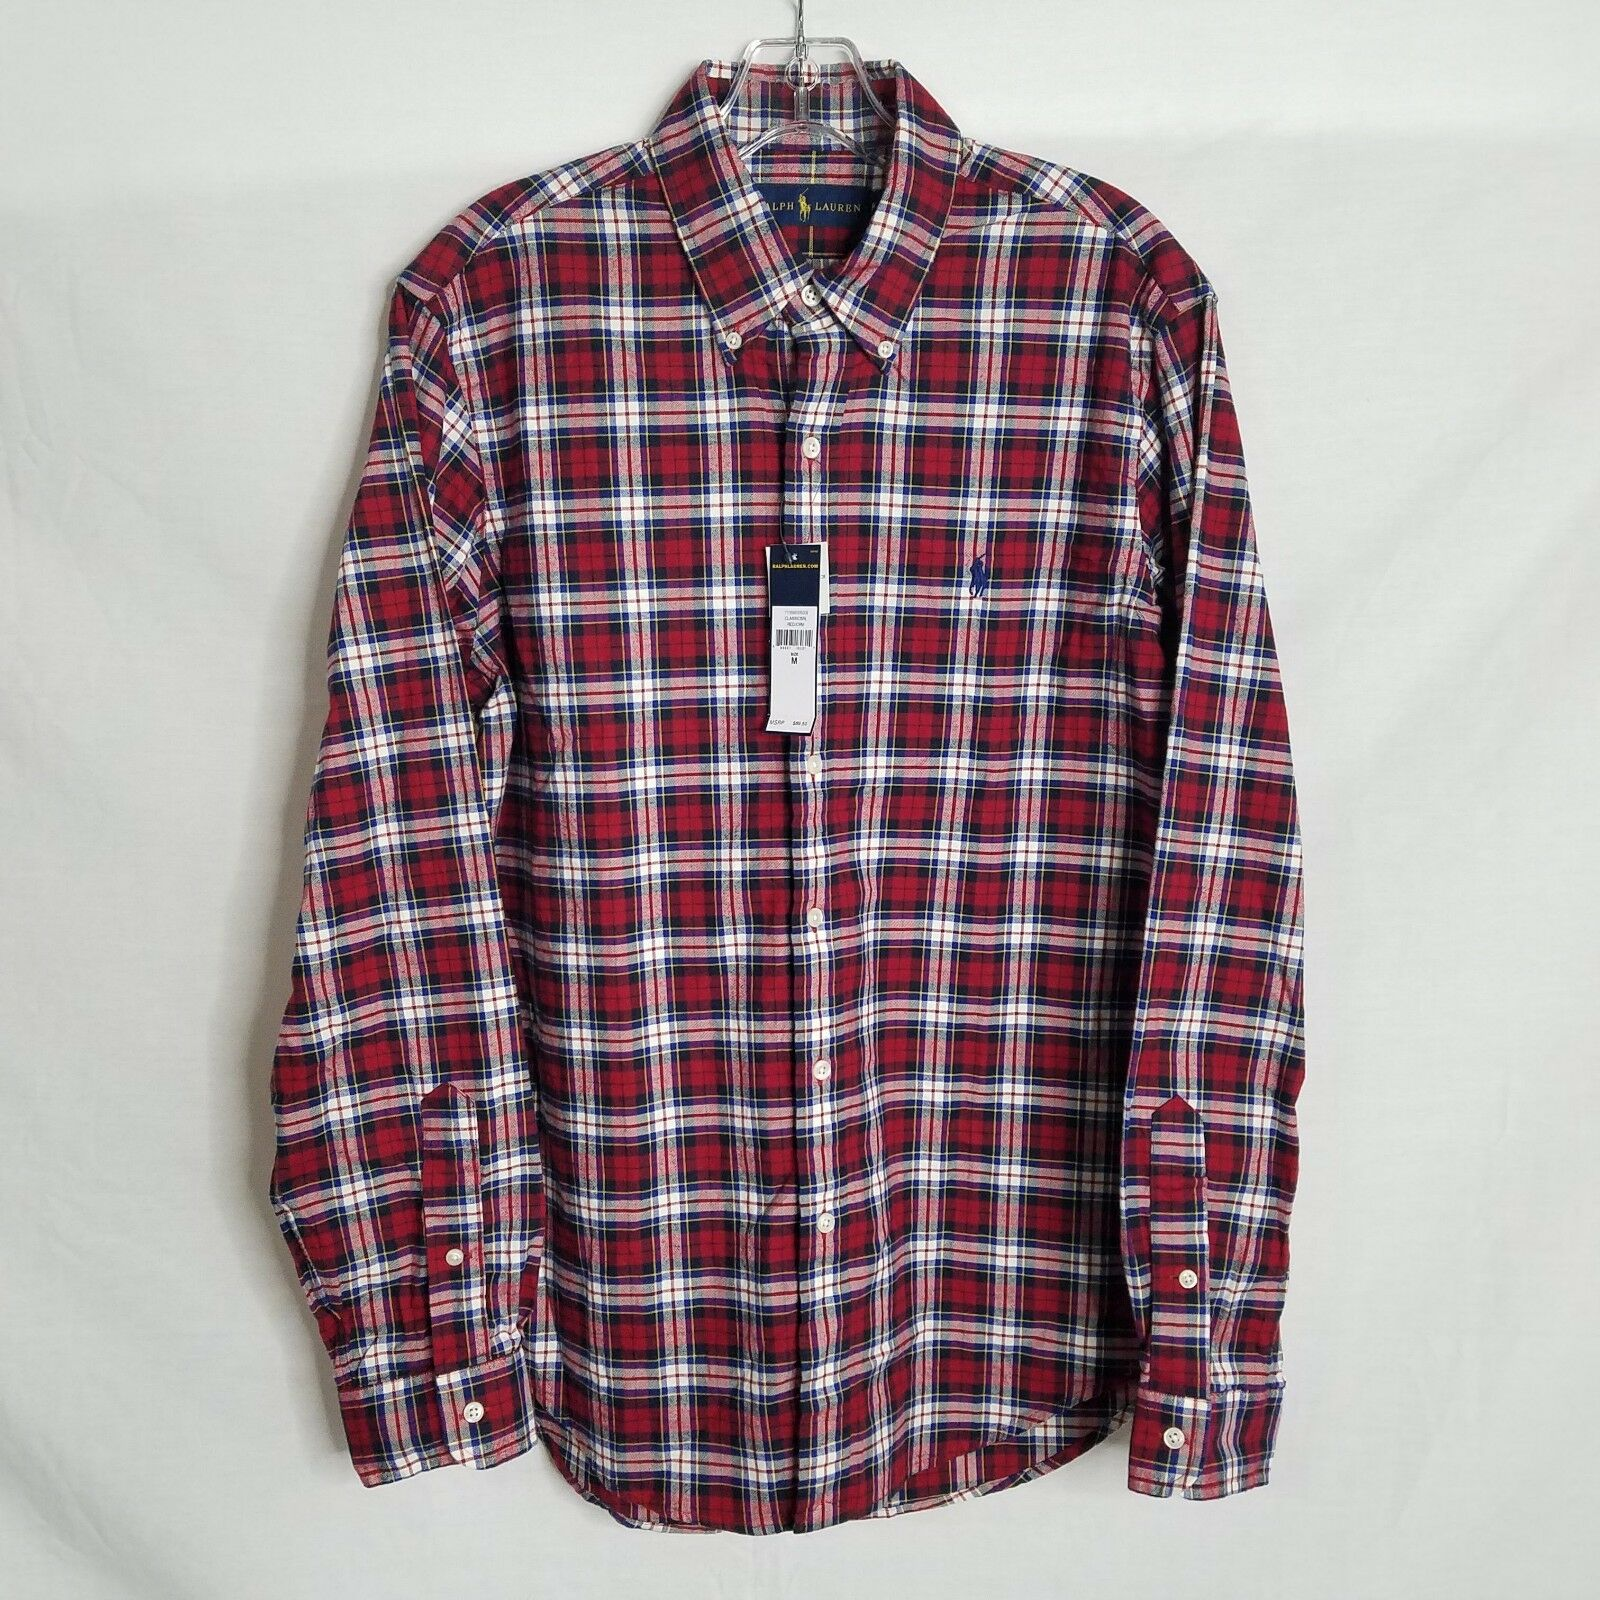 NEW Polo Ralph Lauren Uomo Long Sleeve Sleeve Sleeve Button Fornt Plaid Shirt Medium K106P a45be2